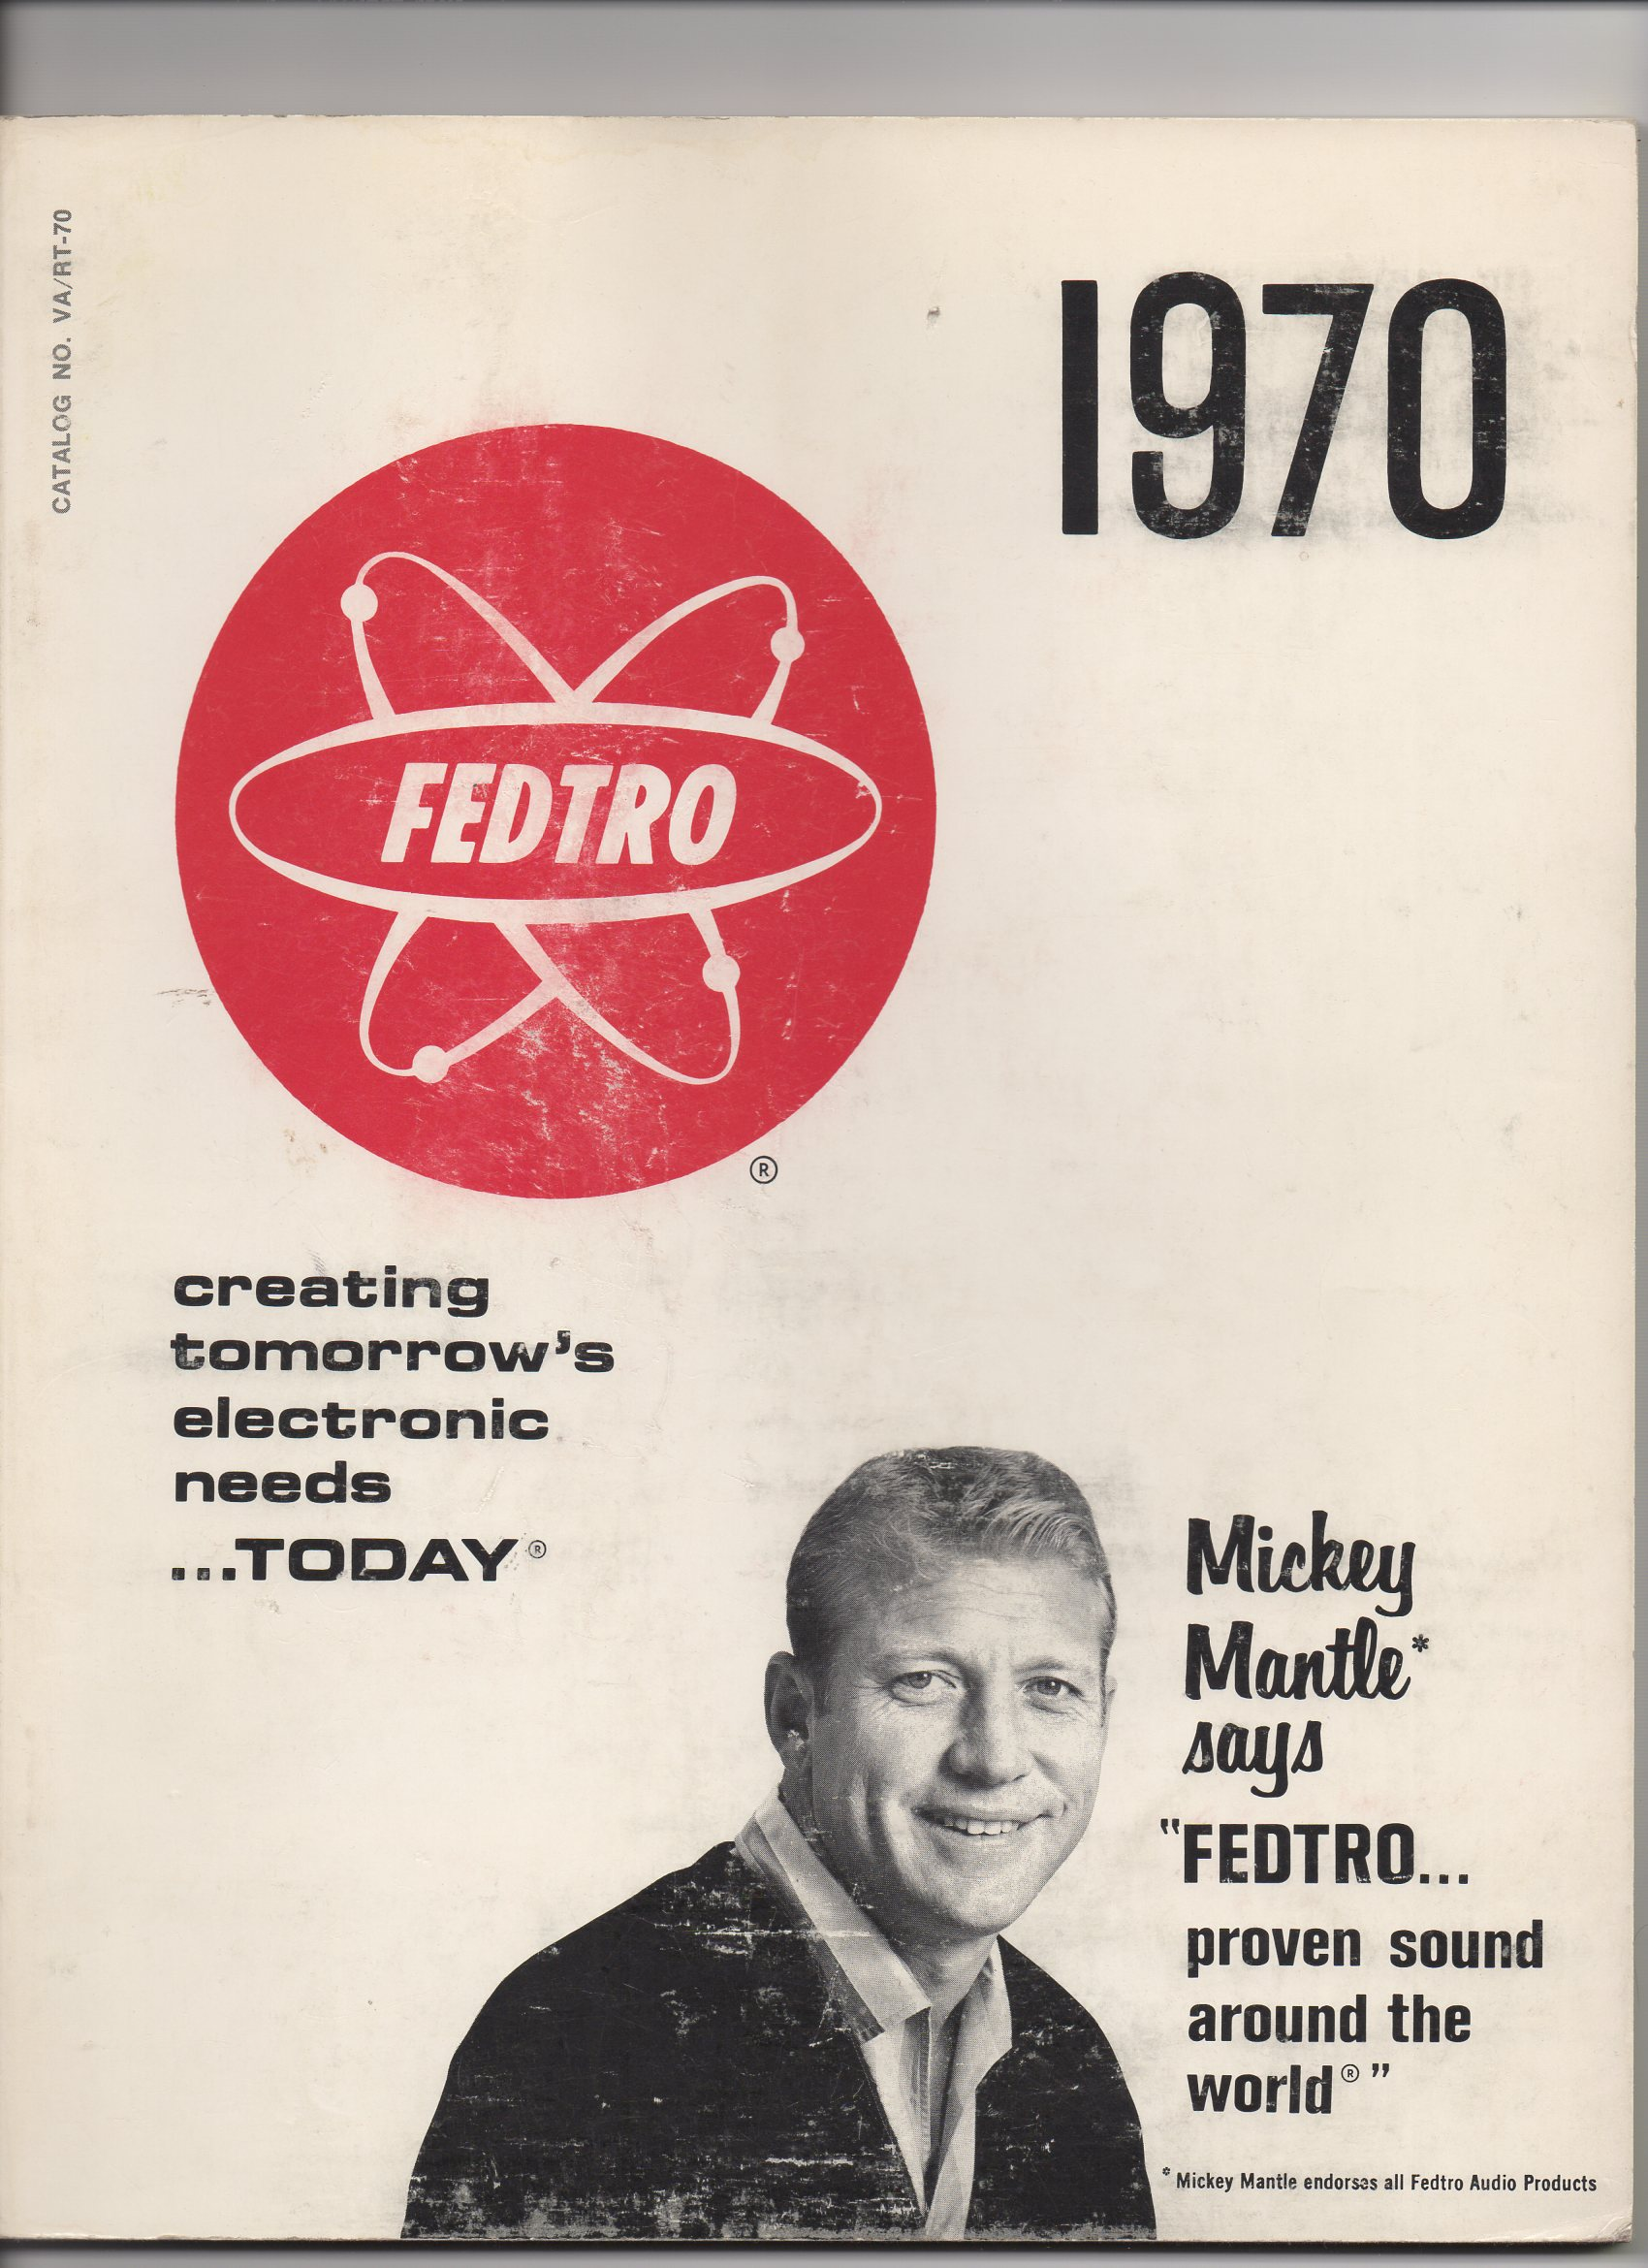 1970 fedtro catalog, no. va/rt-70